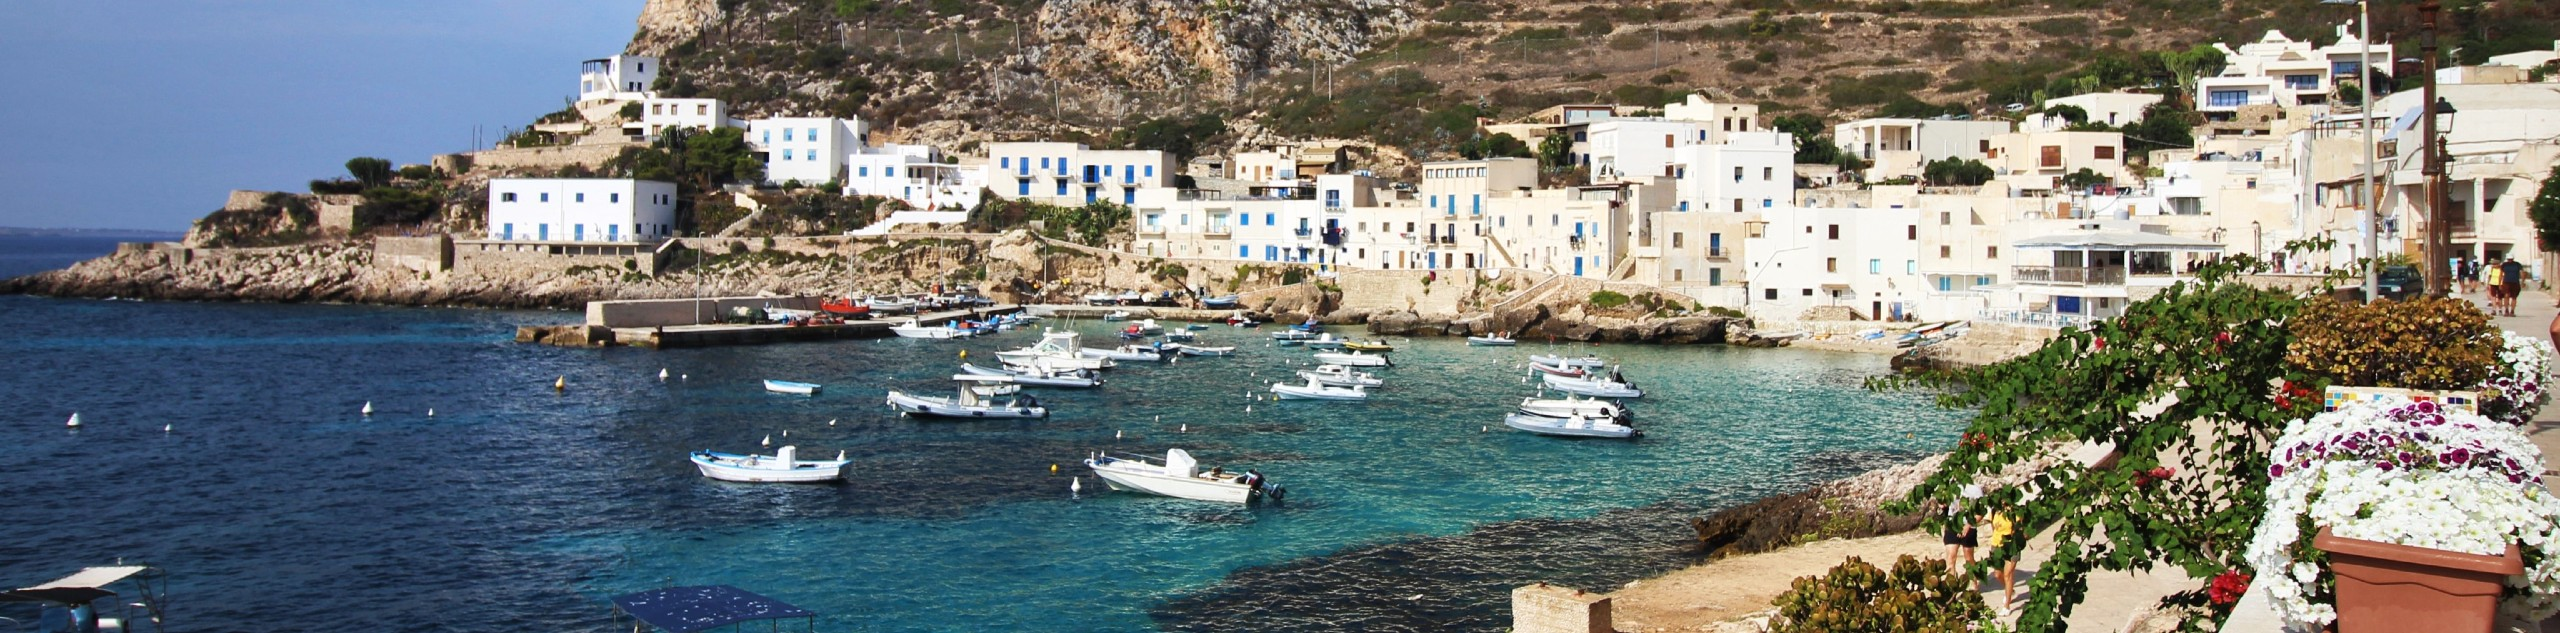 Hiking Palermo and the Egadi Islands